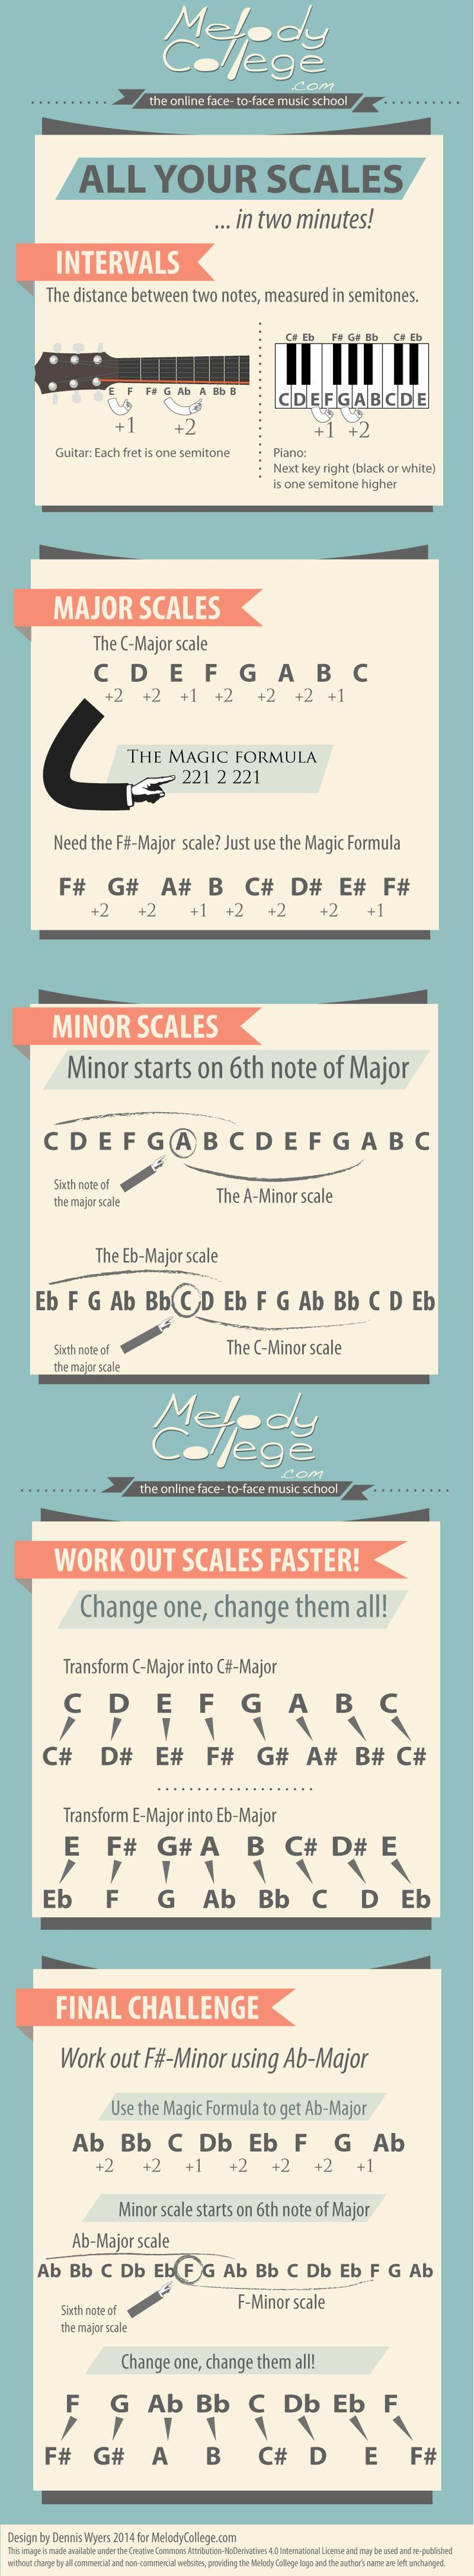 Awesome #learning #infographic for #music